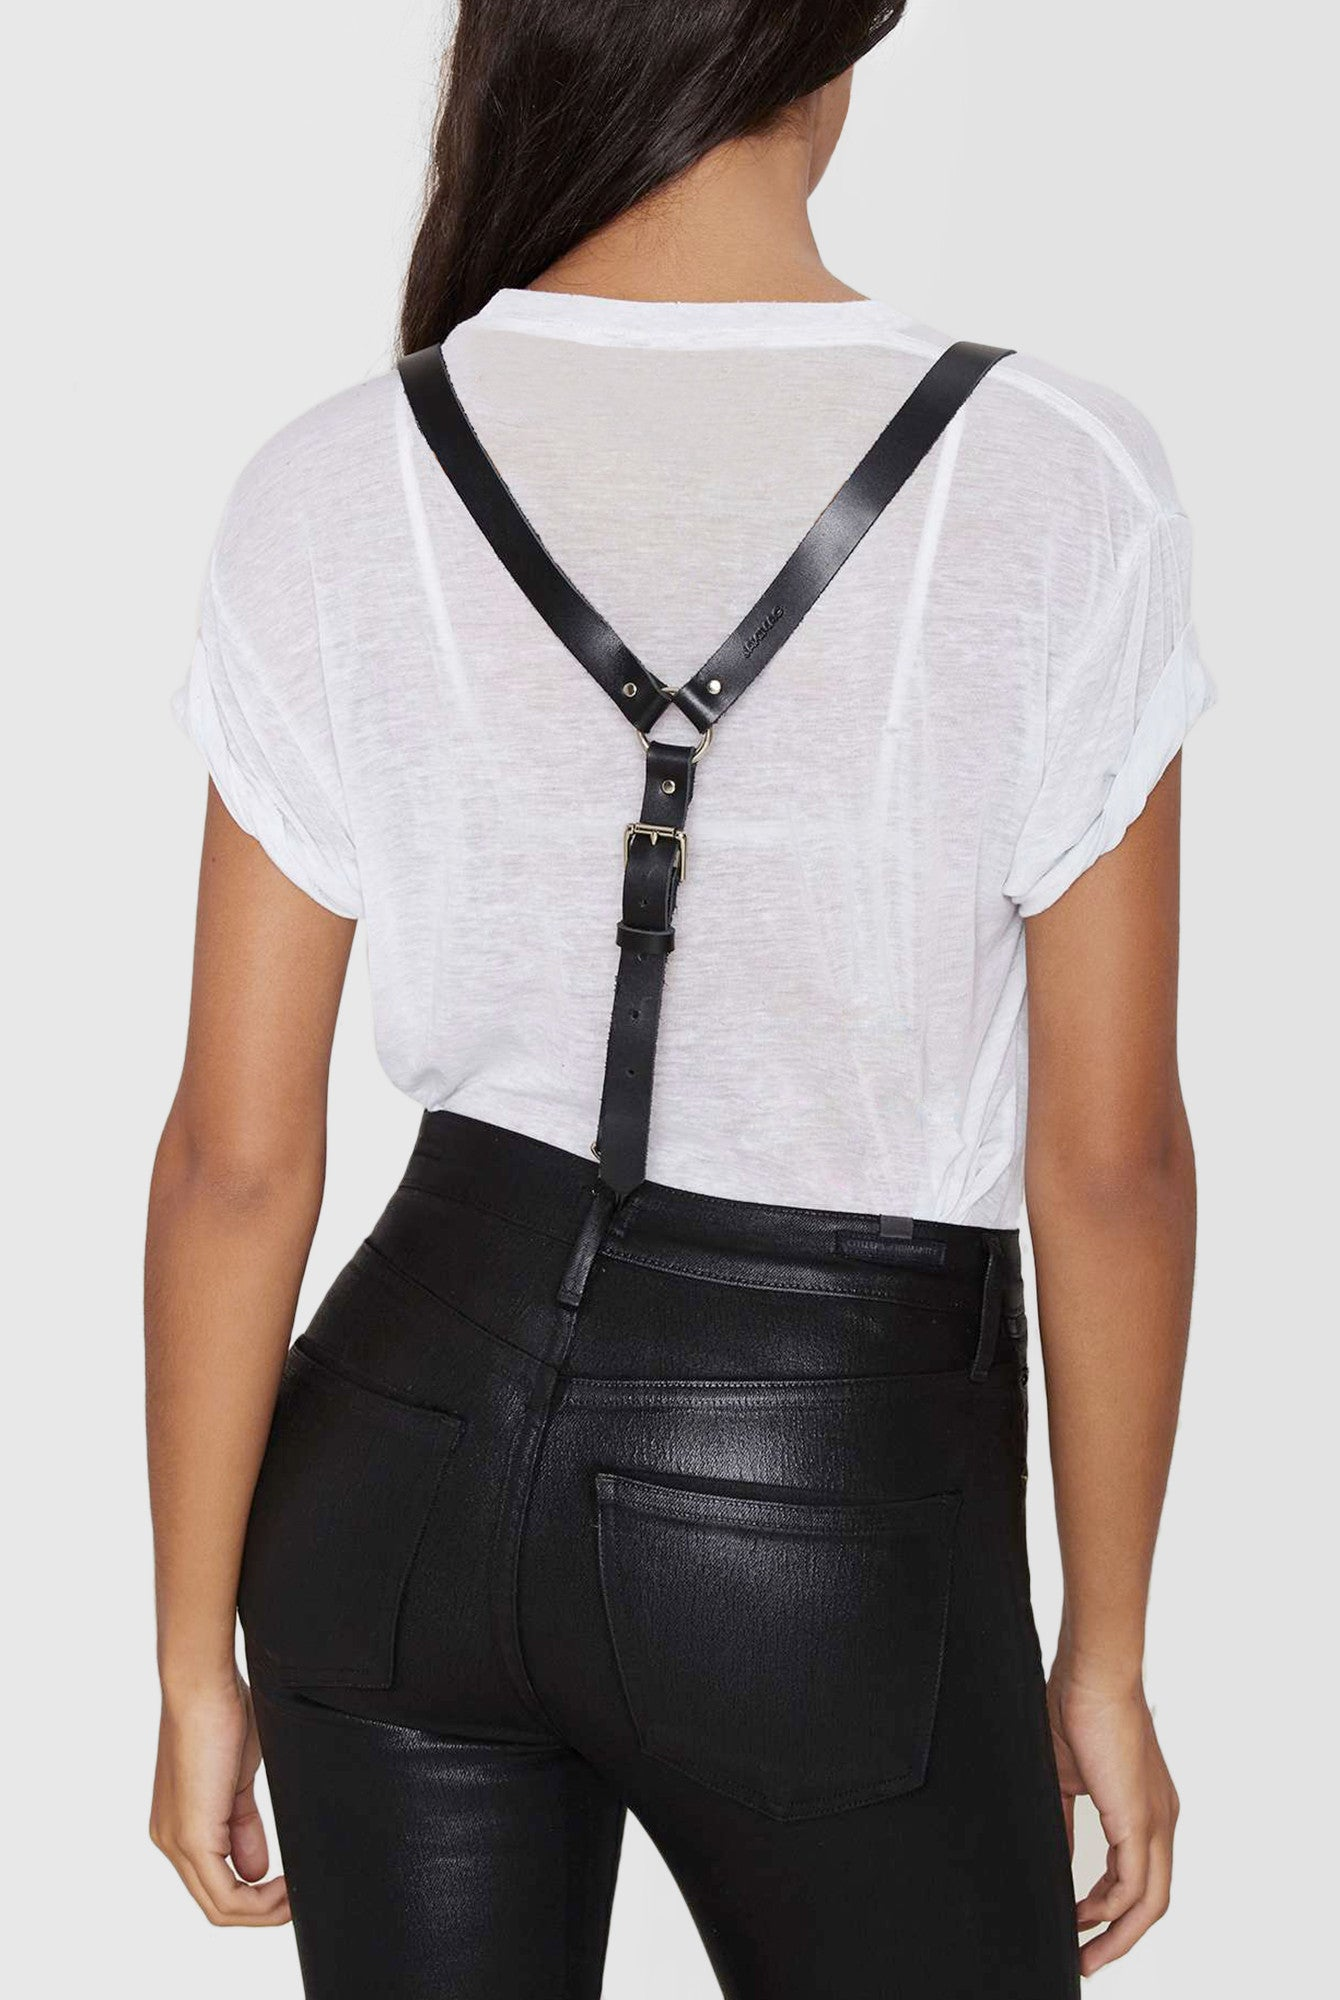 Leather Suspenders For Women By Jakimac  Shop Now-1974